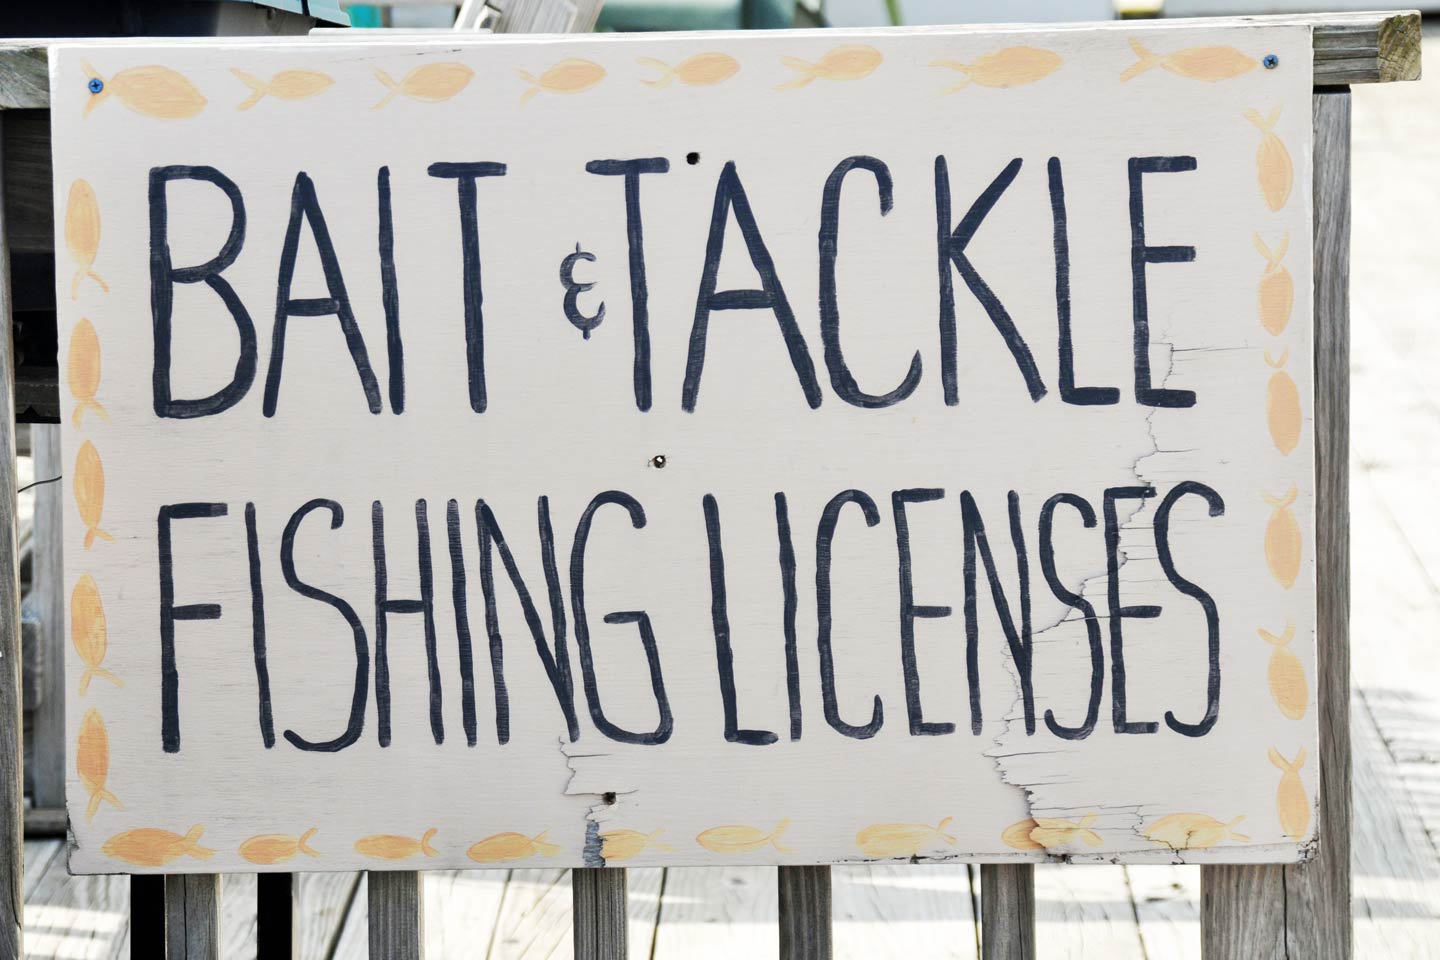 Signage at local Oceanside tackle shop, advertising bait and fishing licenses